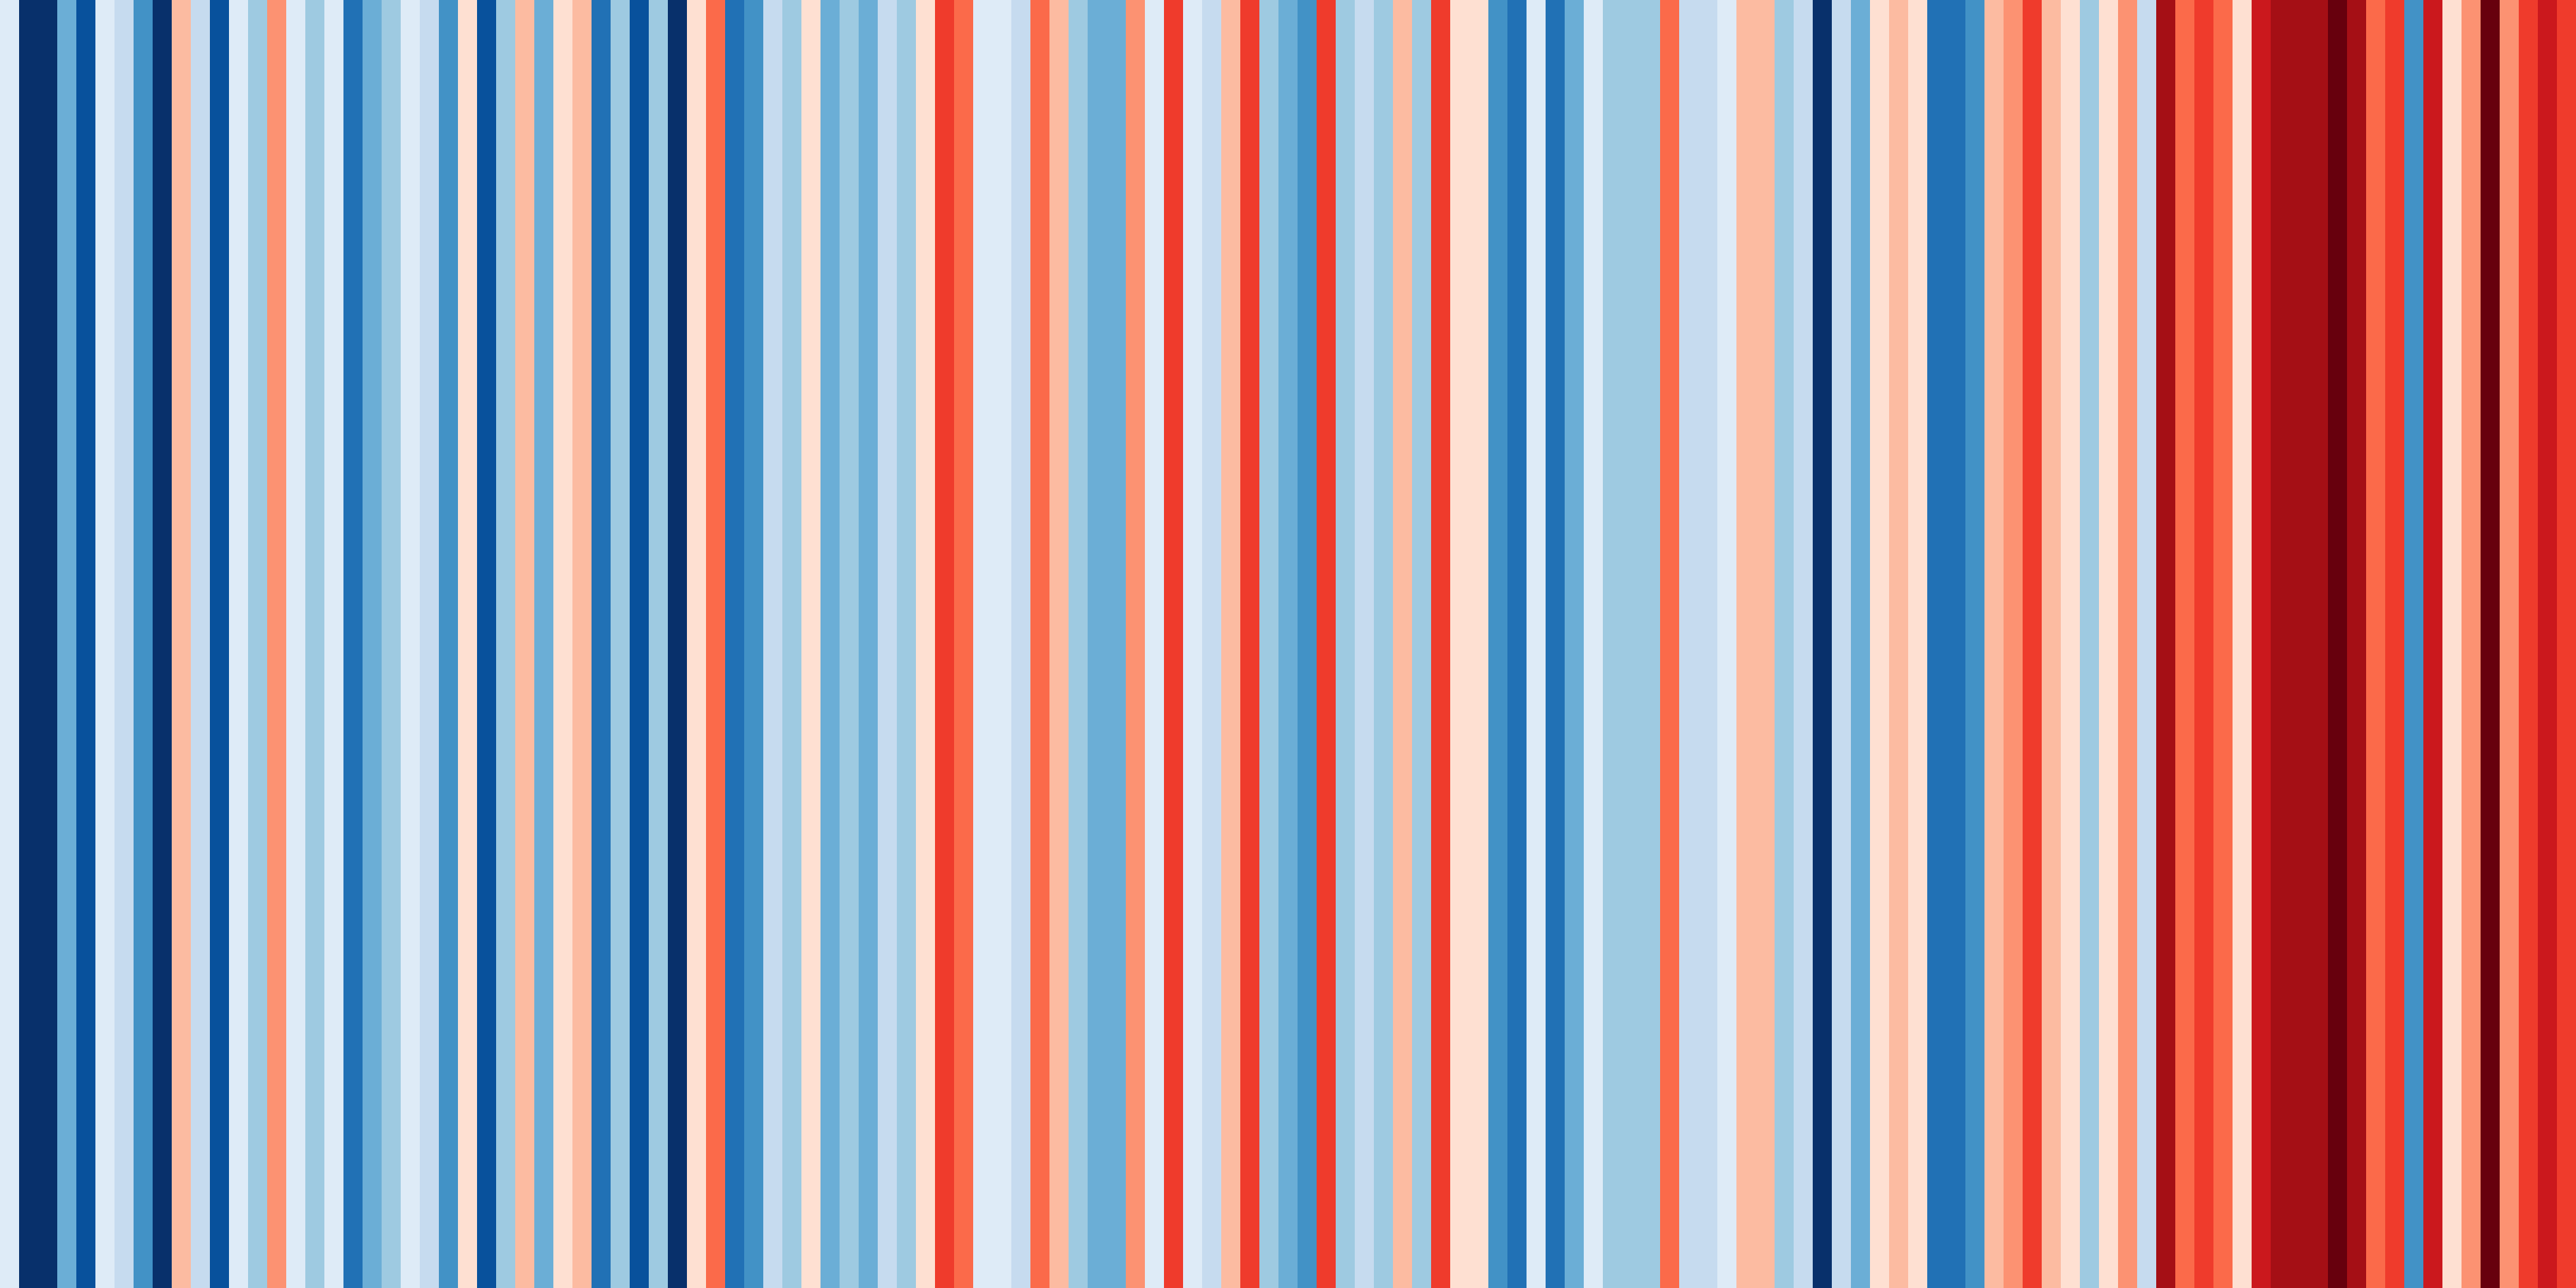 Warming Stripes for Scotland from 1884-2018